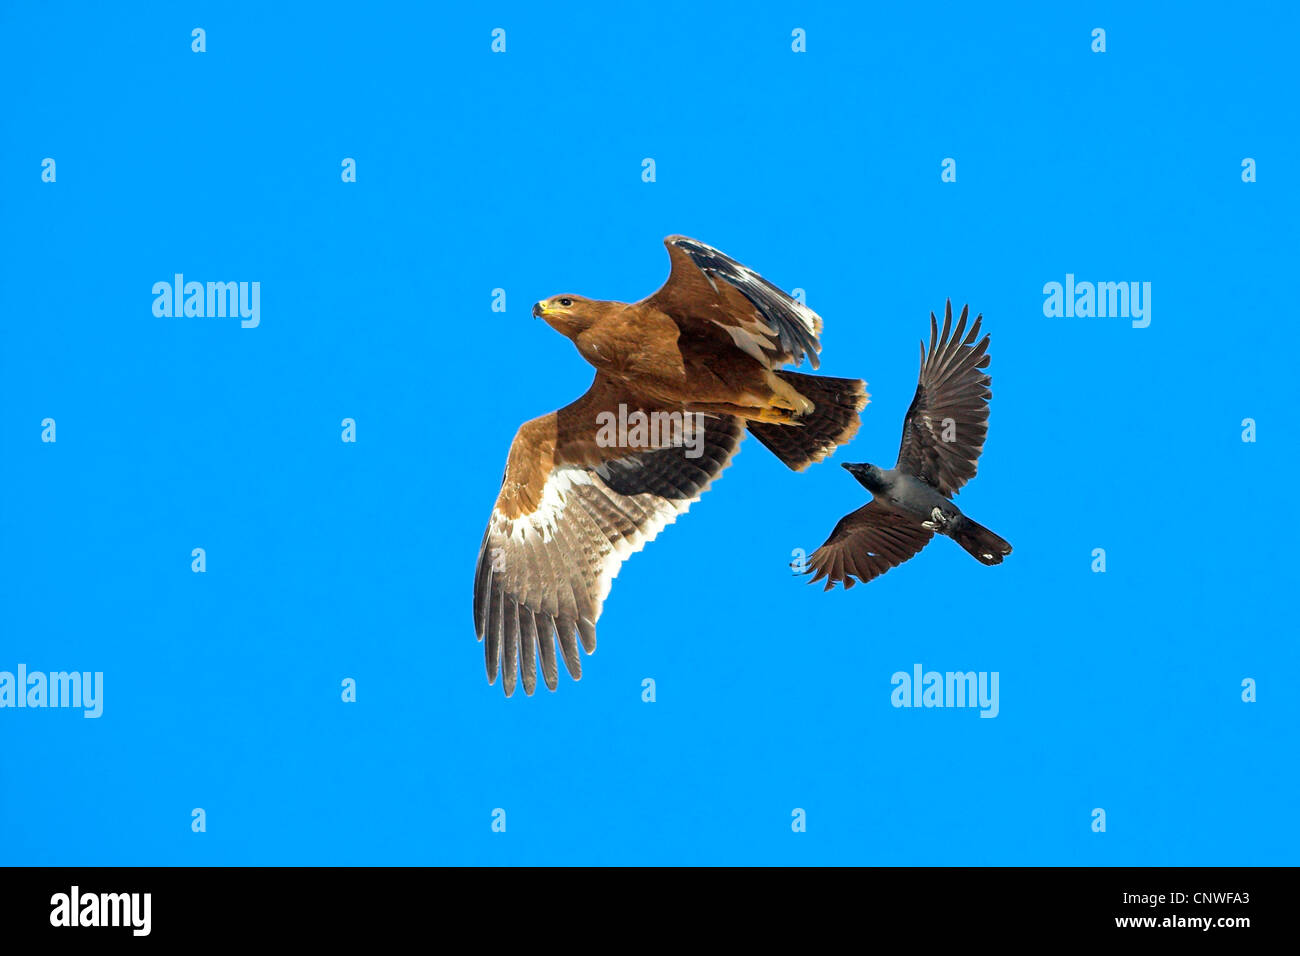 steppe eagle (Aquila nipalensis, Aquila rapax nipalensis), being attacked by a house crow in the air, Oman - Stock Image